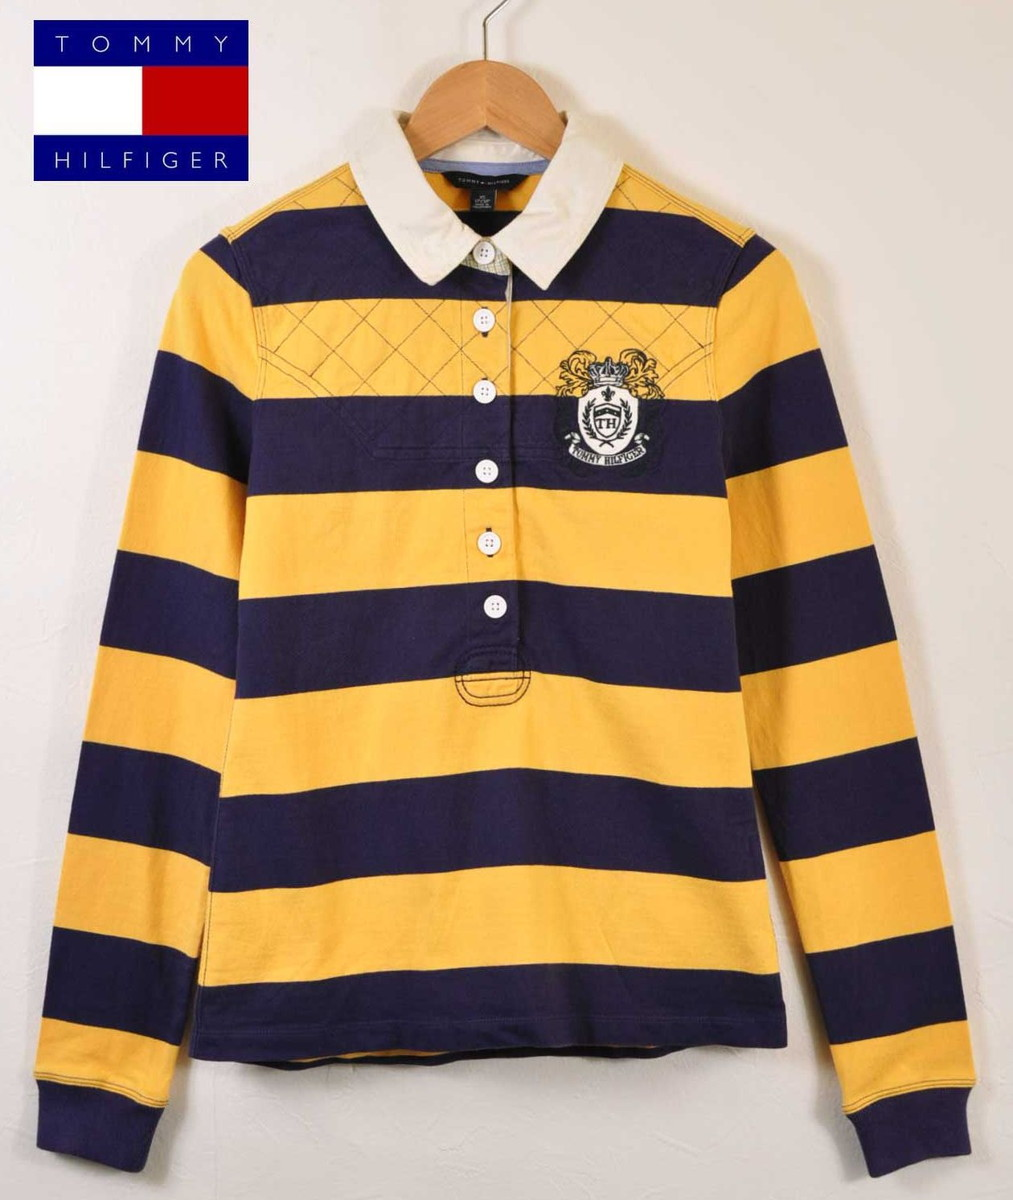 39fc248f TOMMY HILFIGER トミーヒルフィガー long sleeves rugby shirt-style long sleeves polo  shirt yellow X ...